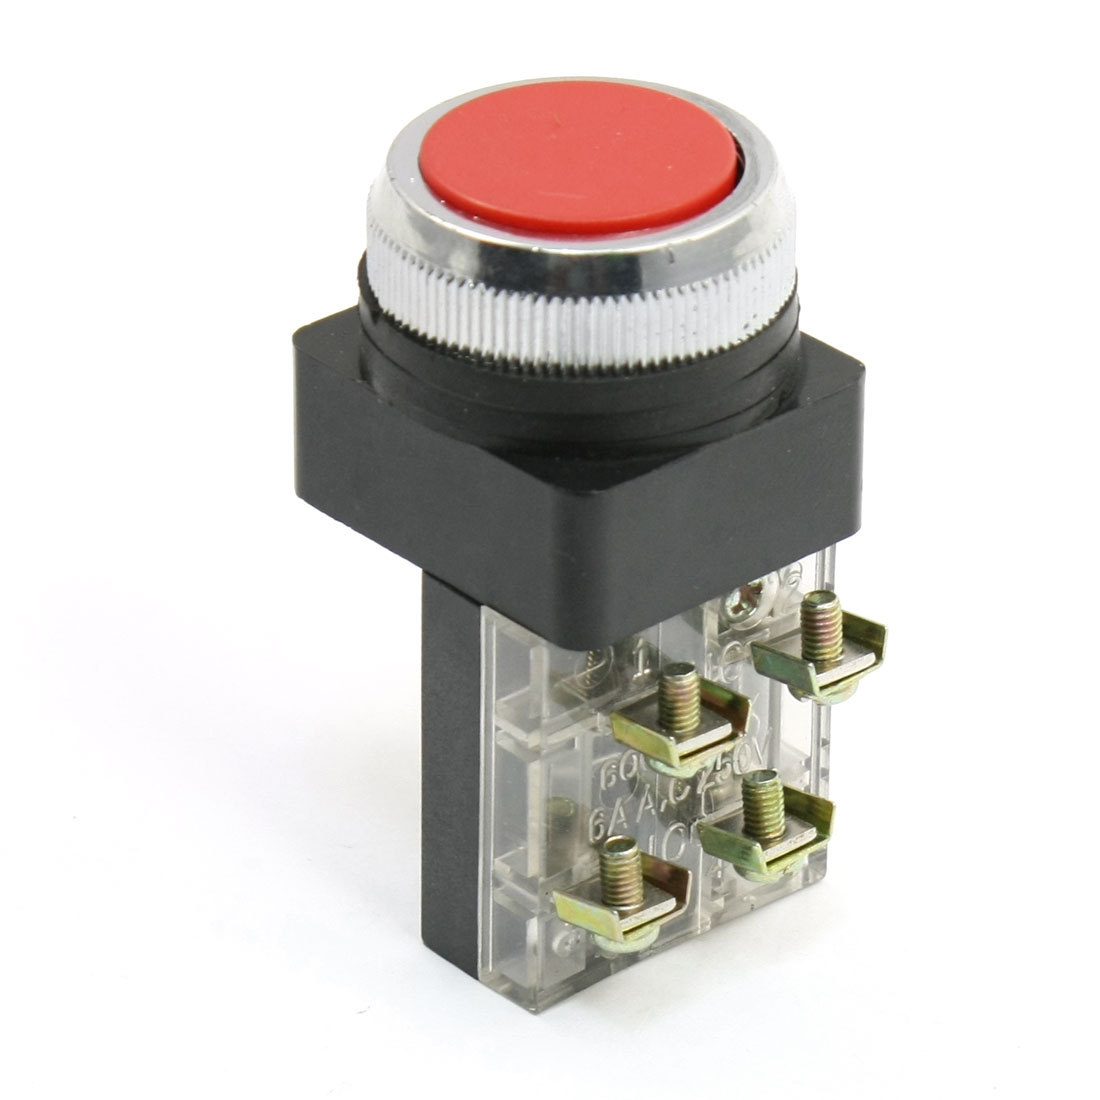 AC 250V 6A NO NC Momentary Push Button Red Round Flat Pushbutton Switch